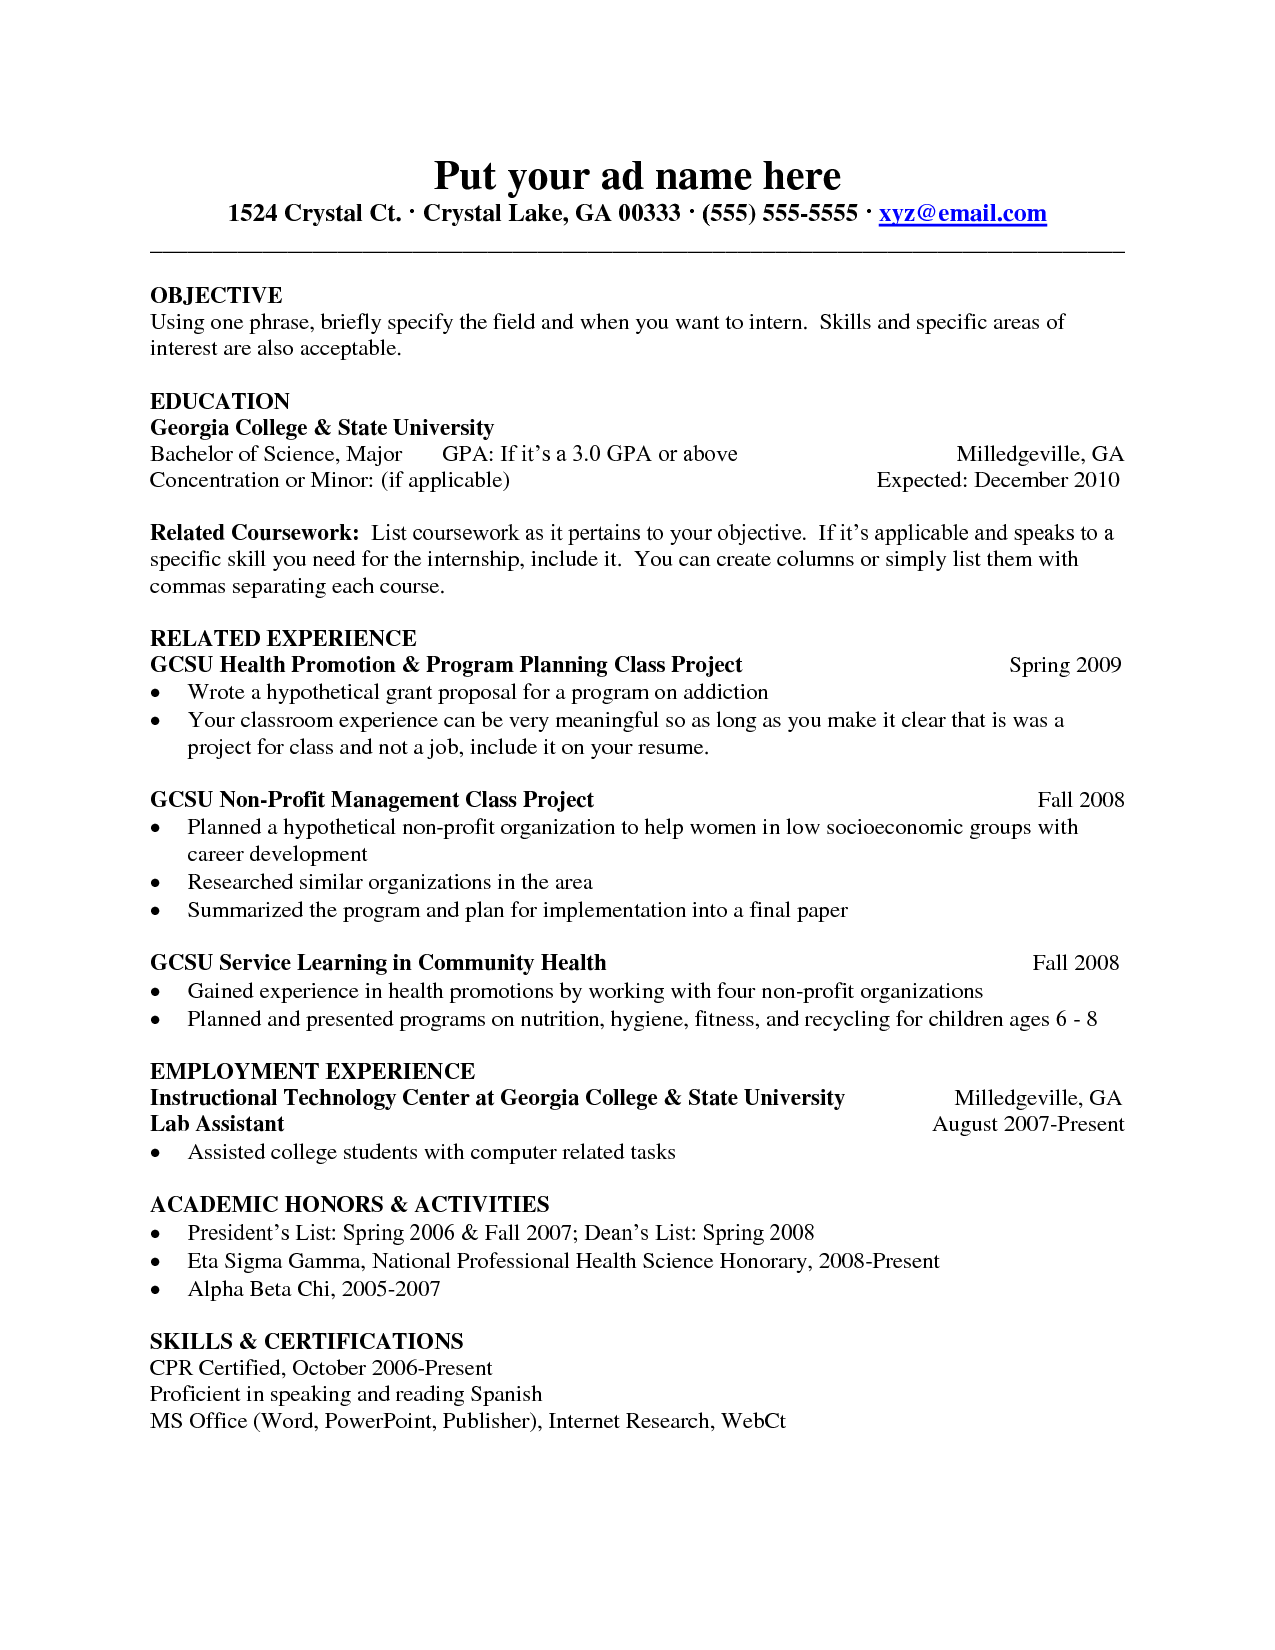 Resume Writer Jobs First Person Point Of View Research Paperfirst Person When A